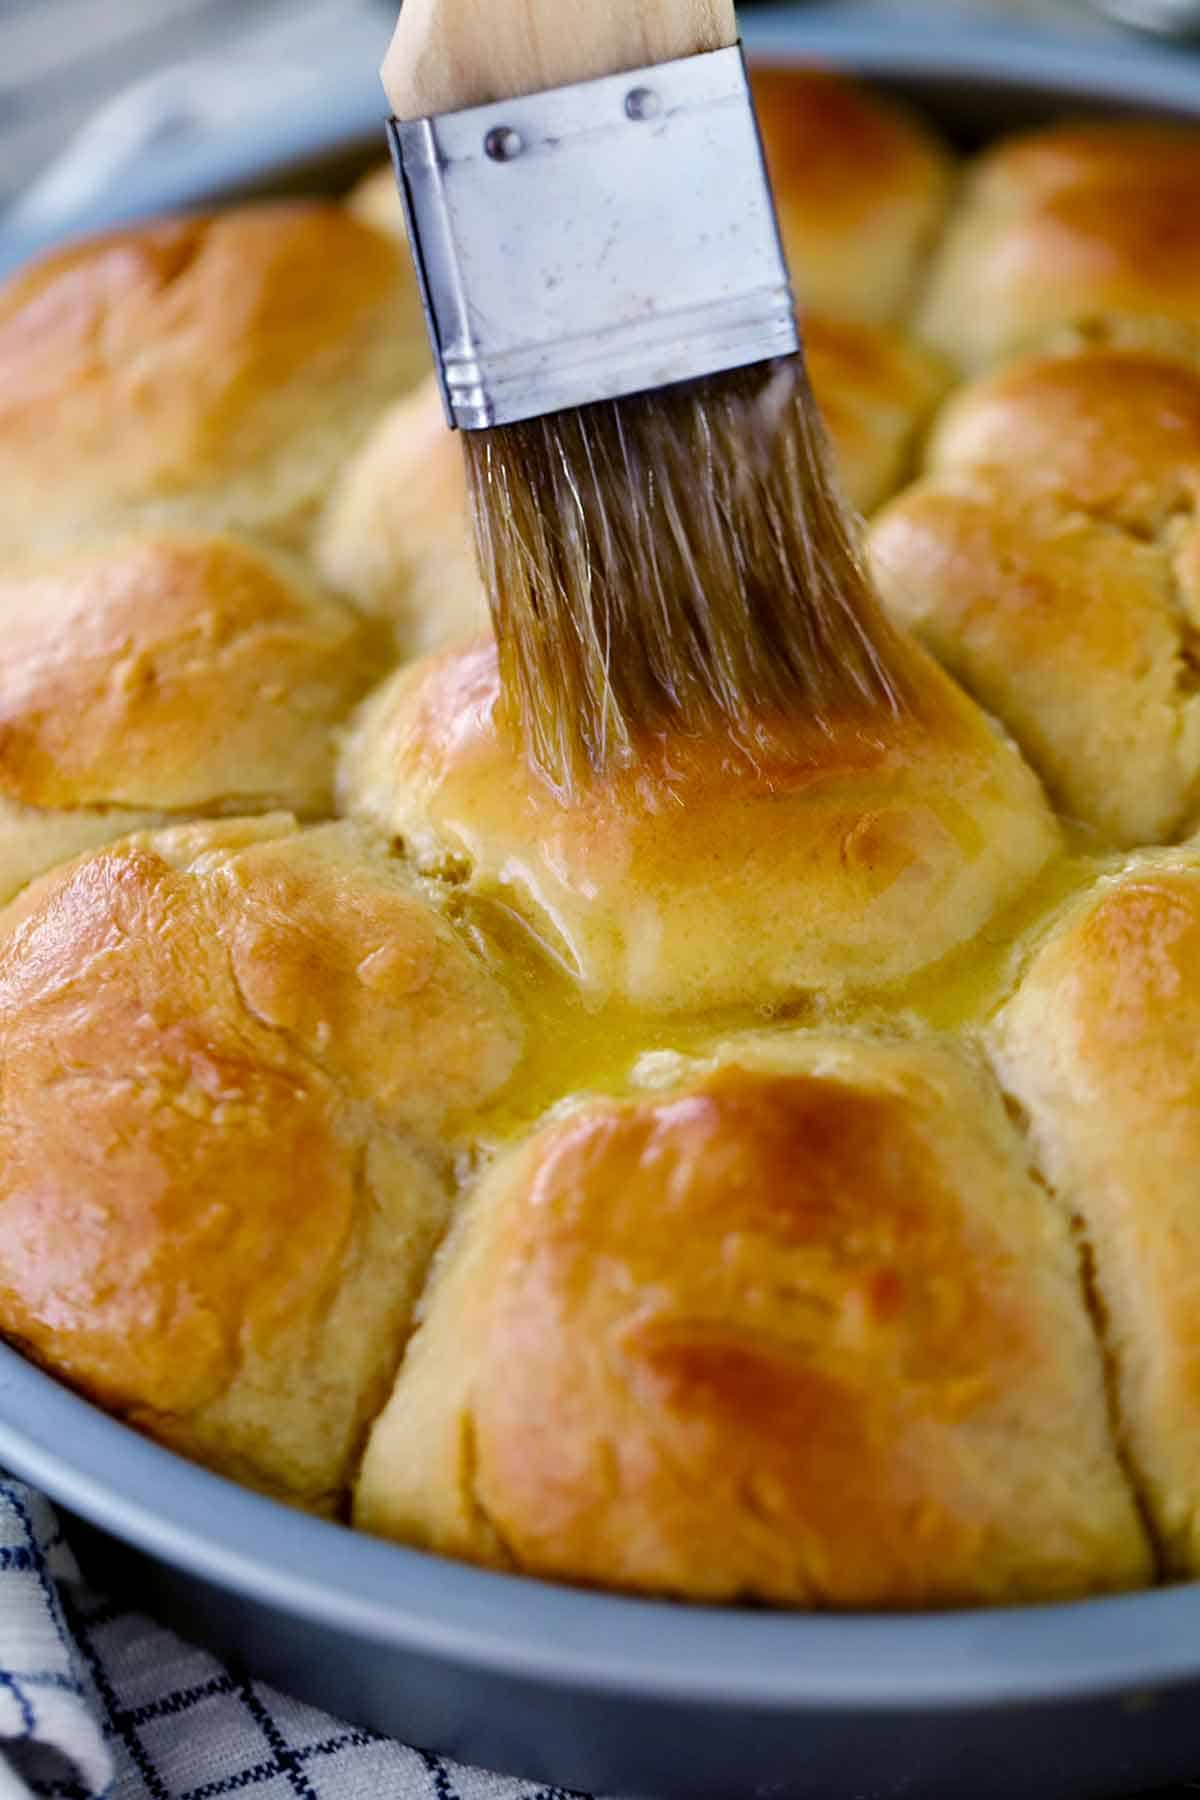 Using a pastry brush to brush melted butter on baked dinner rolls.